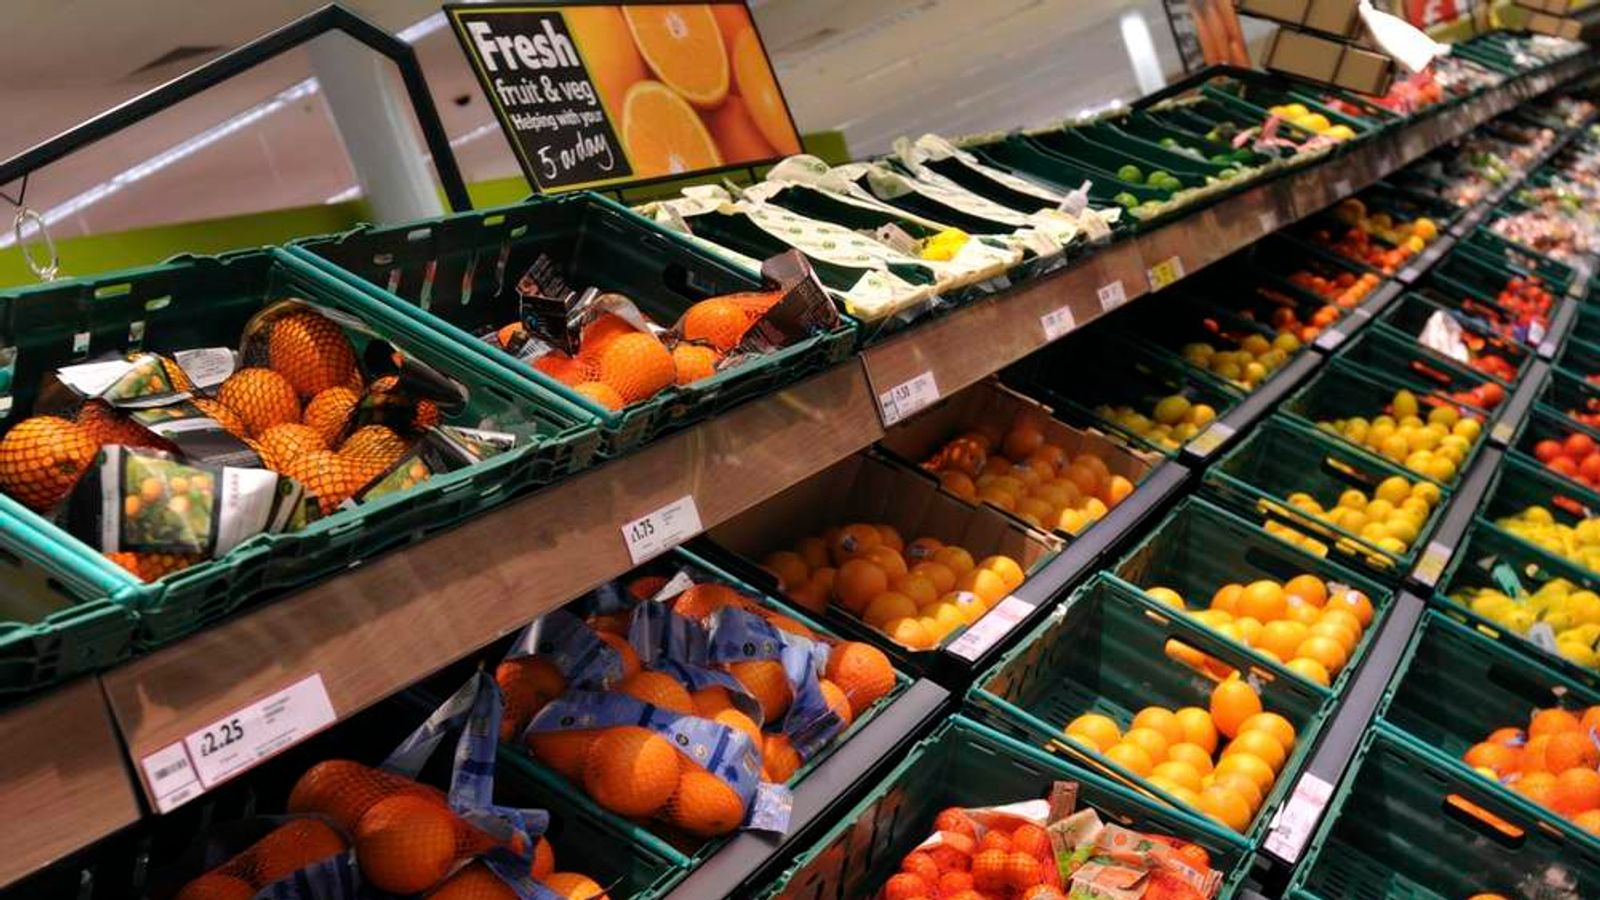 Fruit for sale in a Tesco store